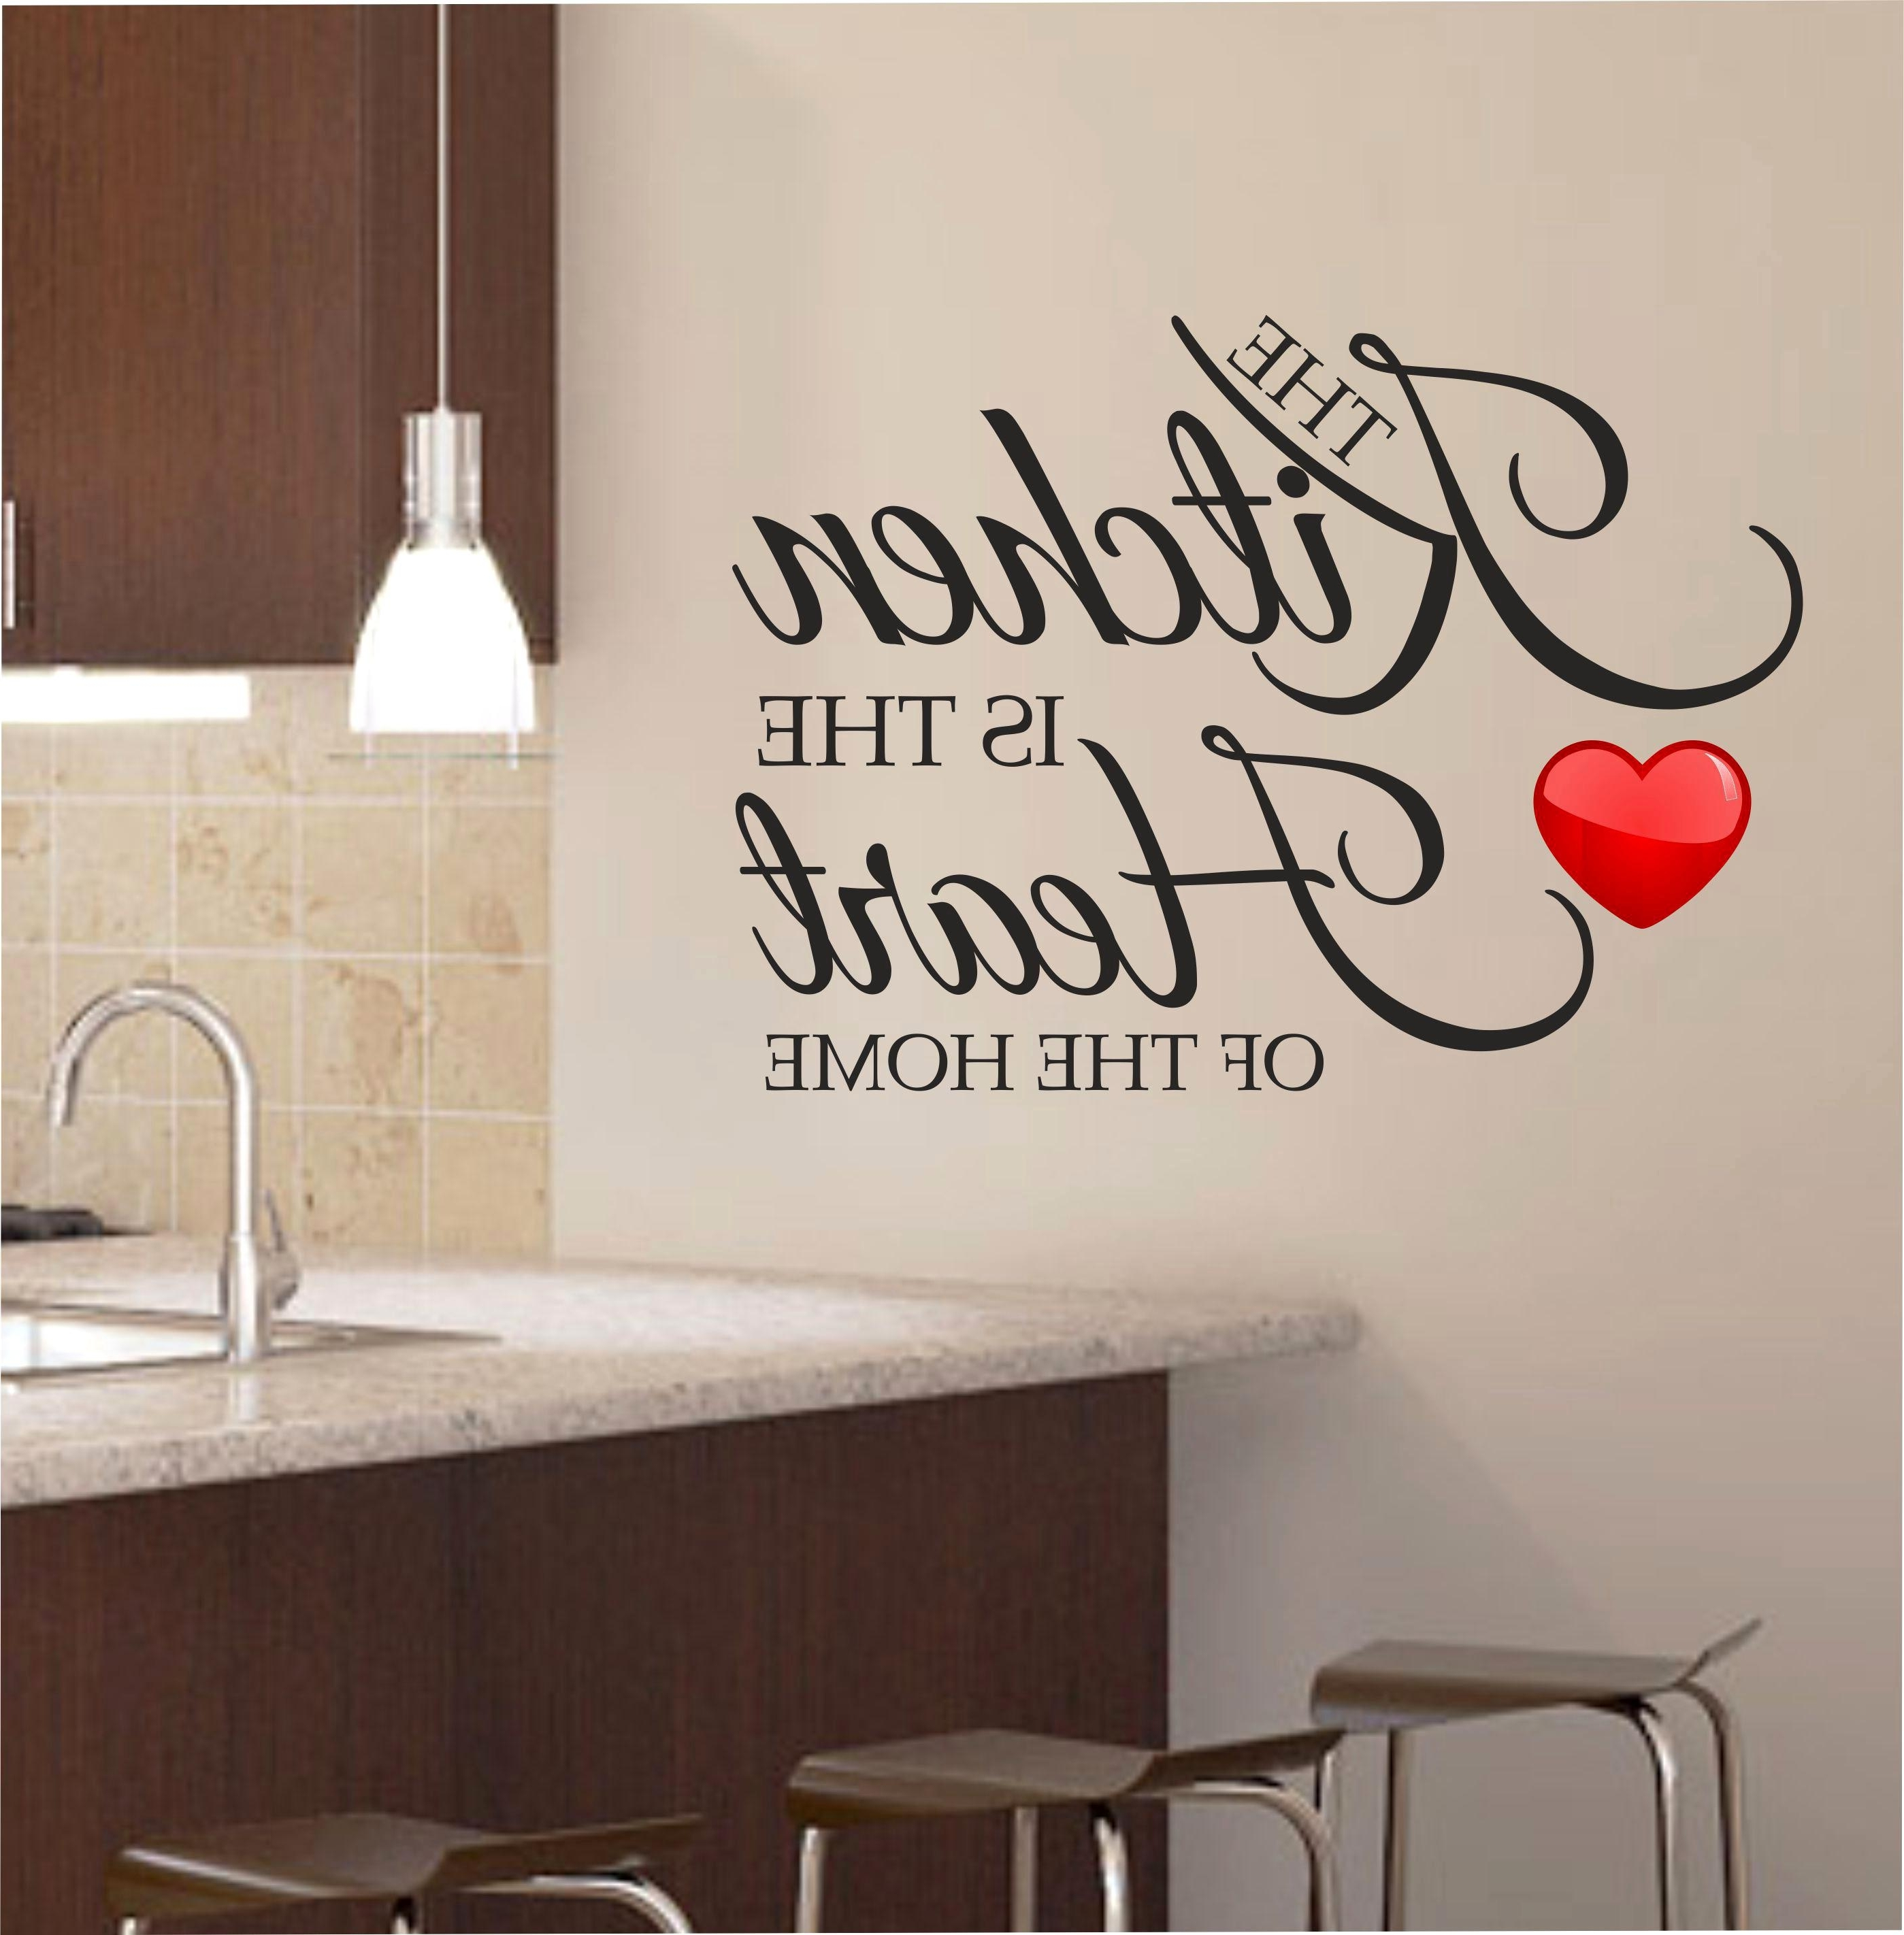 Metal Wall Art With Candles With Regard To Famous Startling Kitchen Metal Wall Art Decor Ideas Inspirational Wall (View 8 of 15)